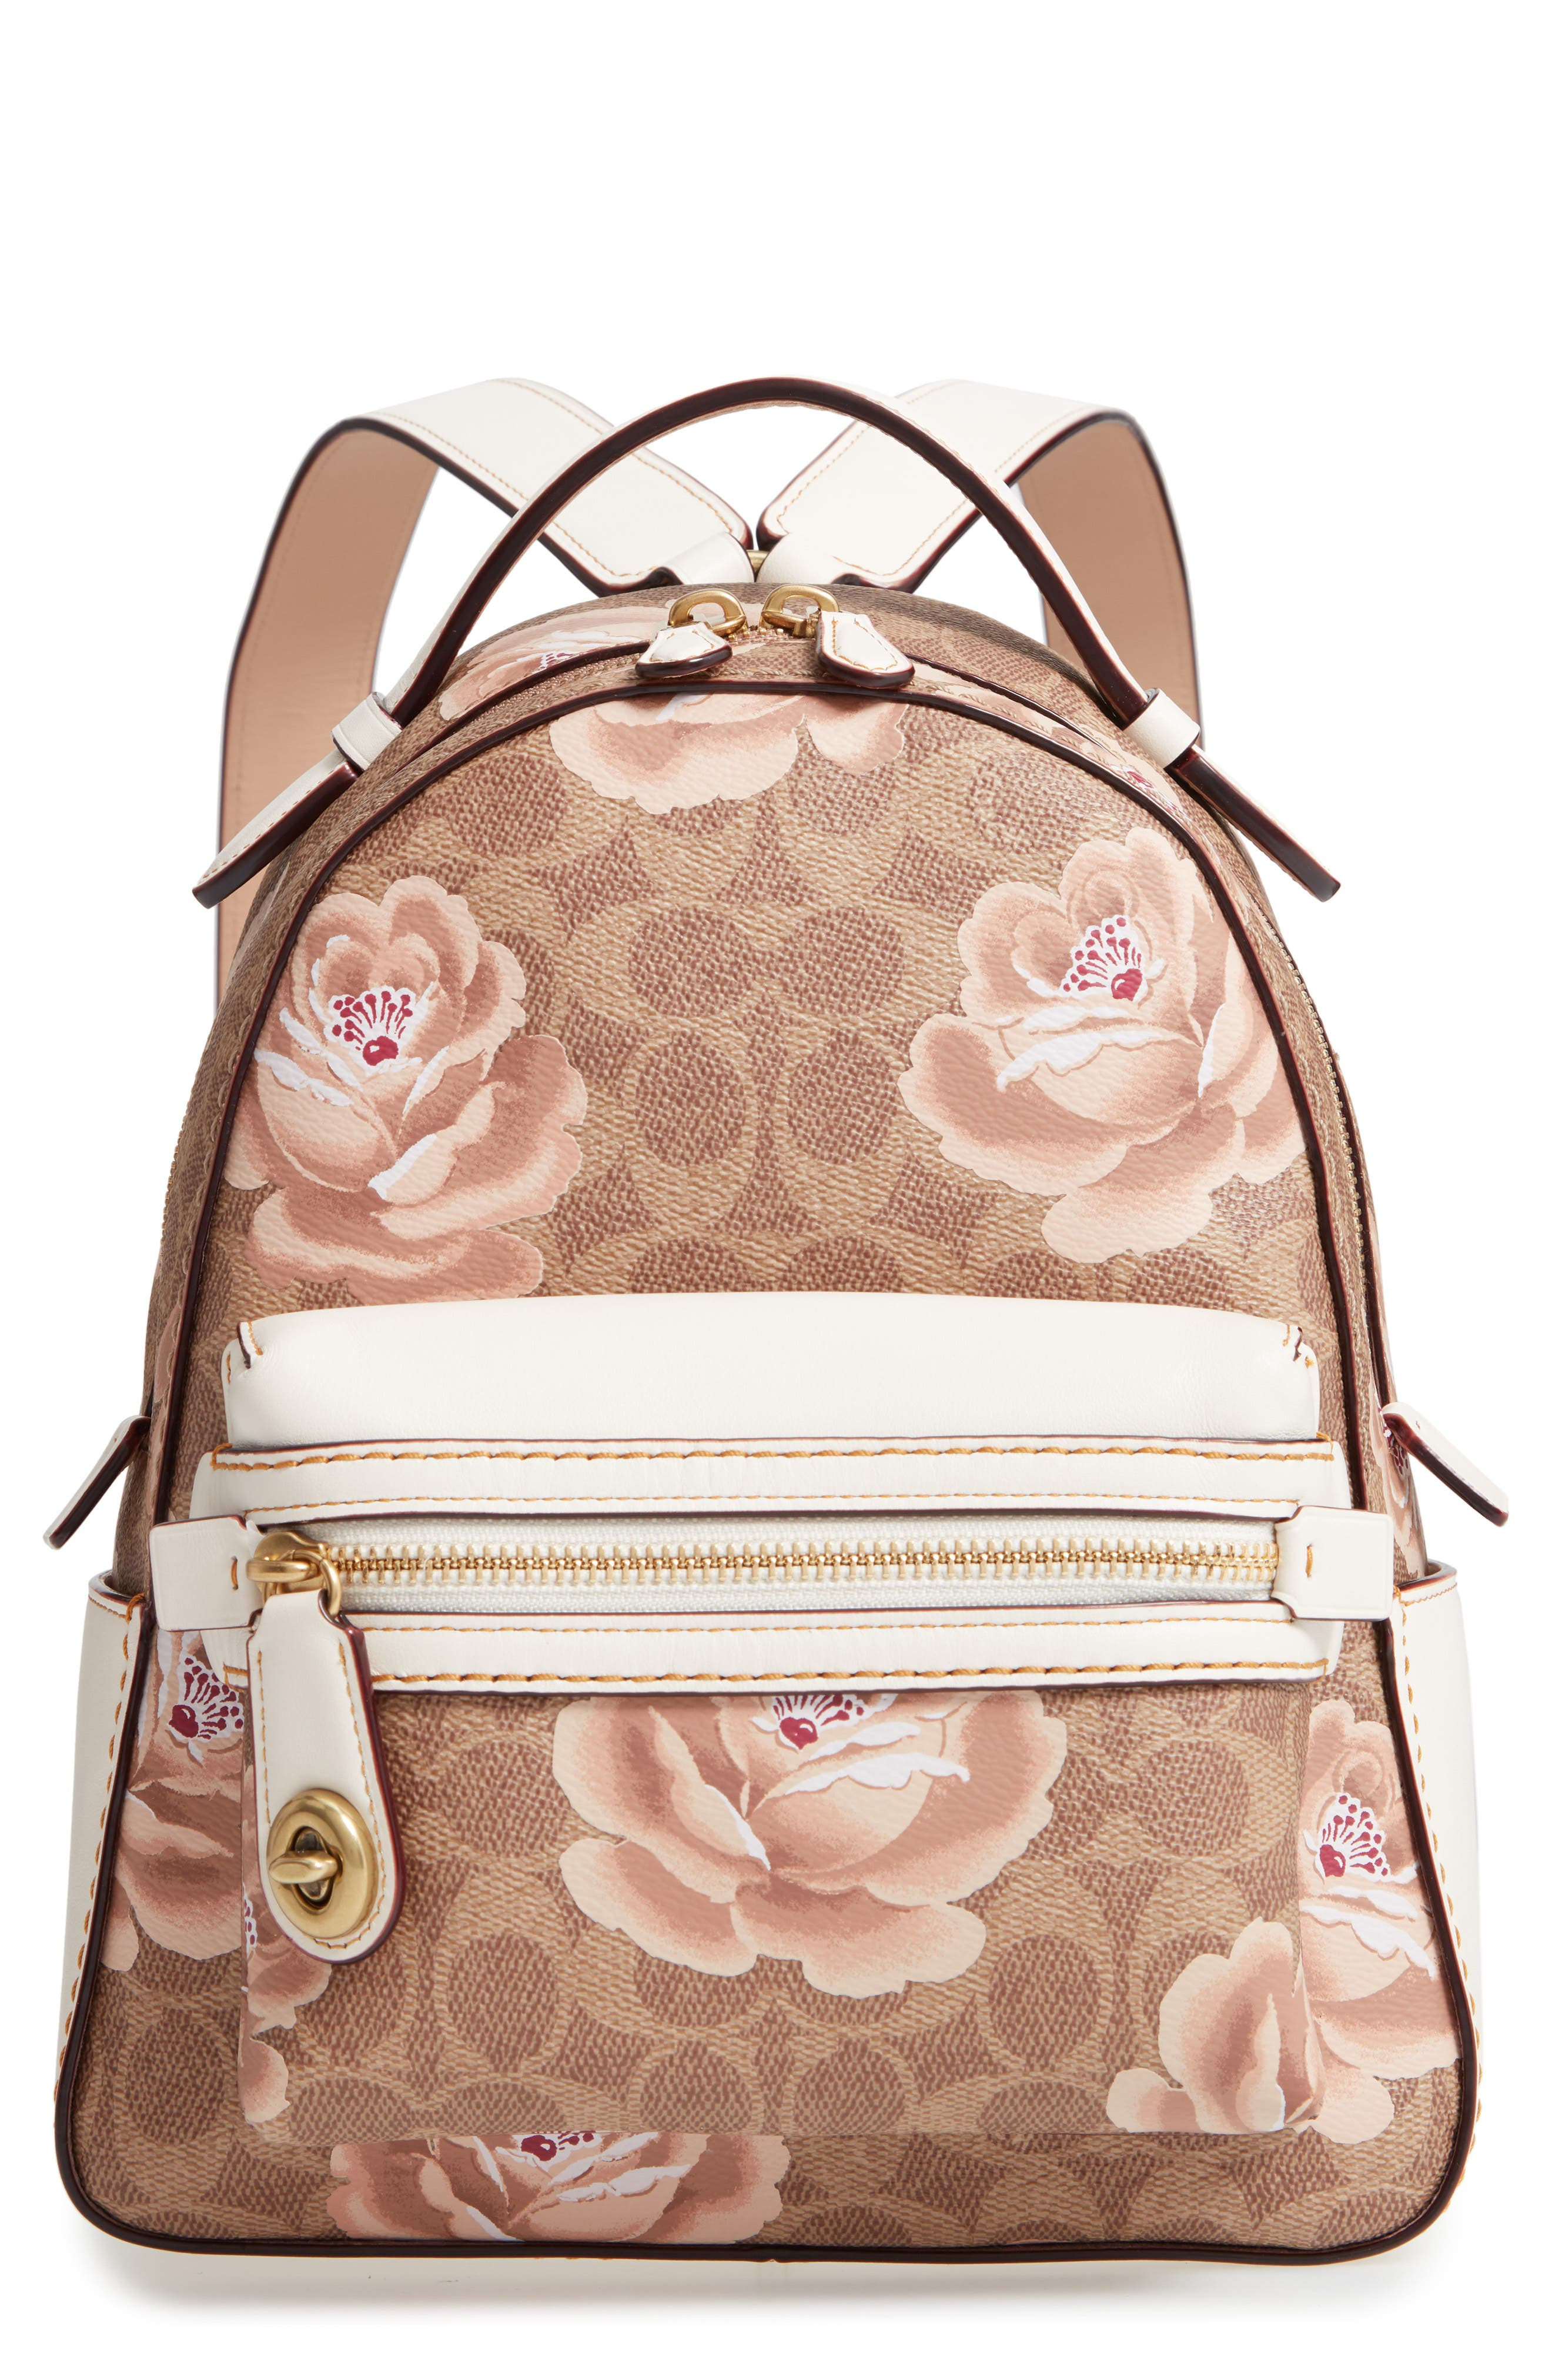 COACH,                             Campus Signature Rose Coated Canvas Backpack,                             Main thumbnail 1, color,                             250